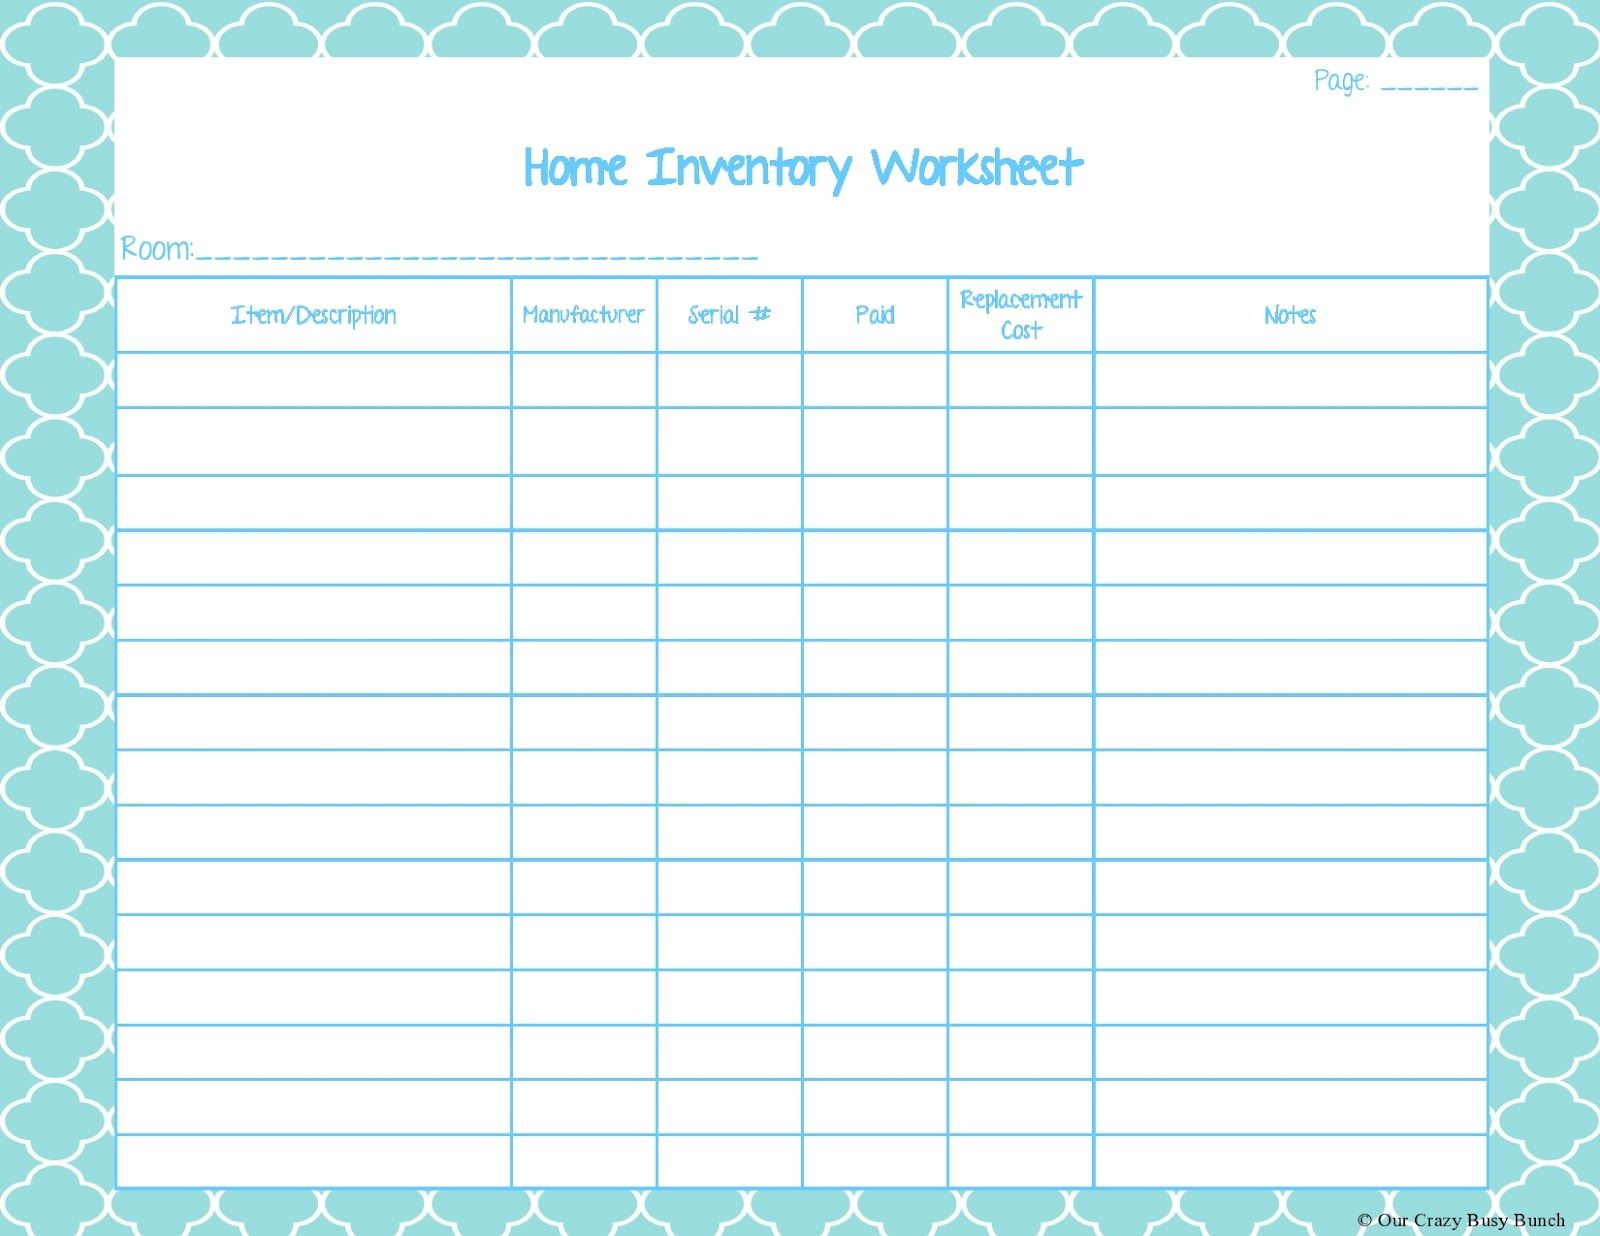 Worksheets Home Inventory Worksheet our crazy busy bunch freebies organizing ideas pinterest freebies